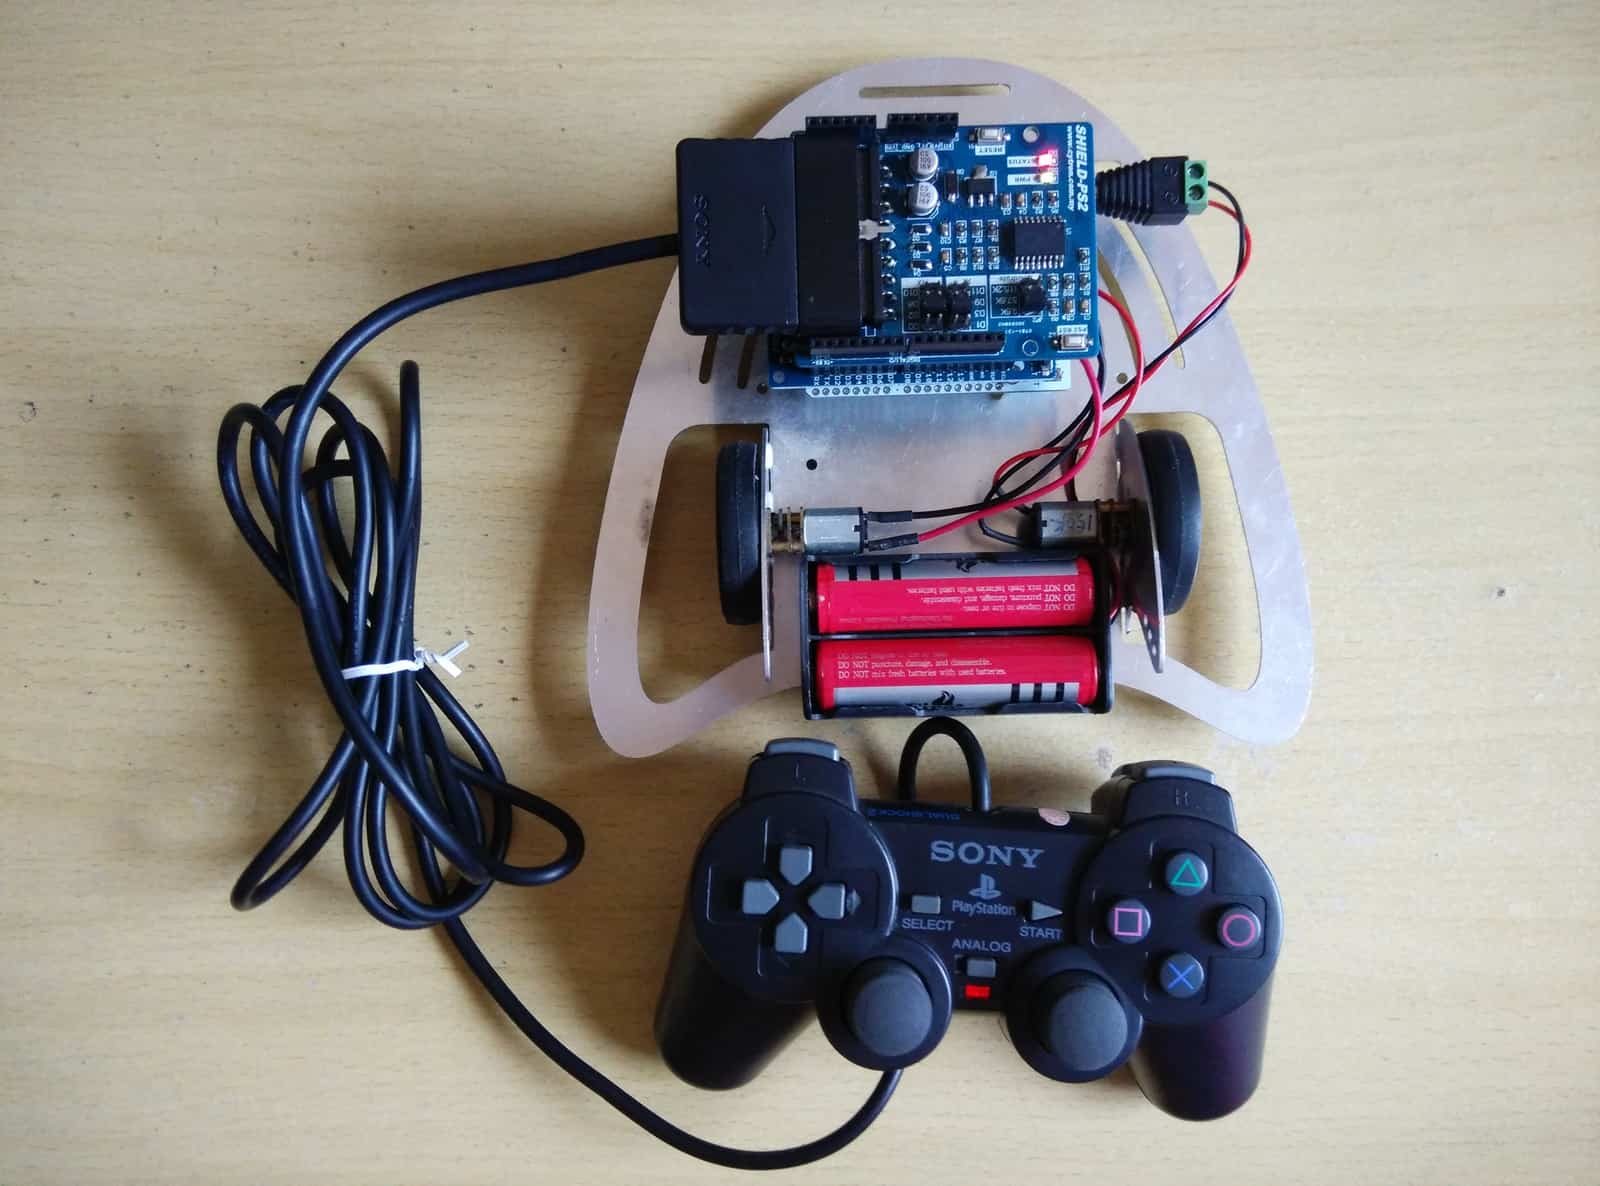 Using cytron ps shield with arduino edubot tutorial by